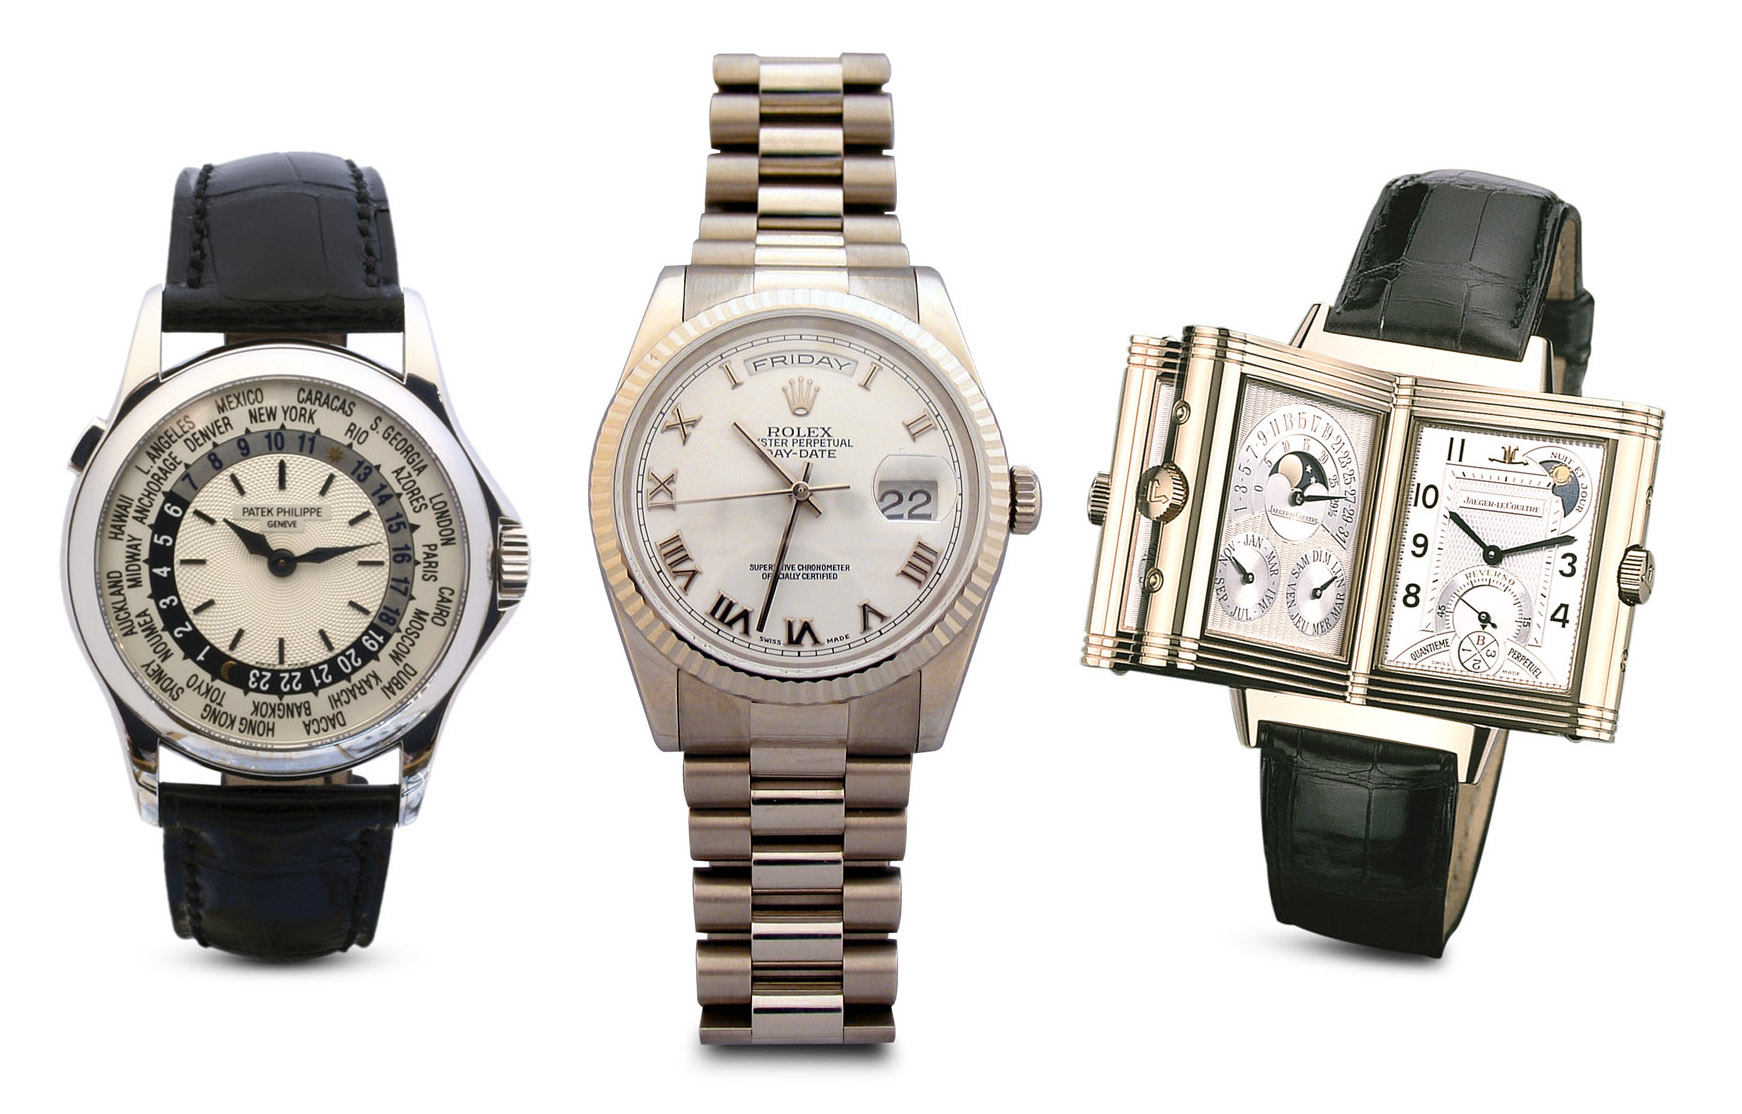 image gallery watches